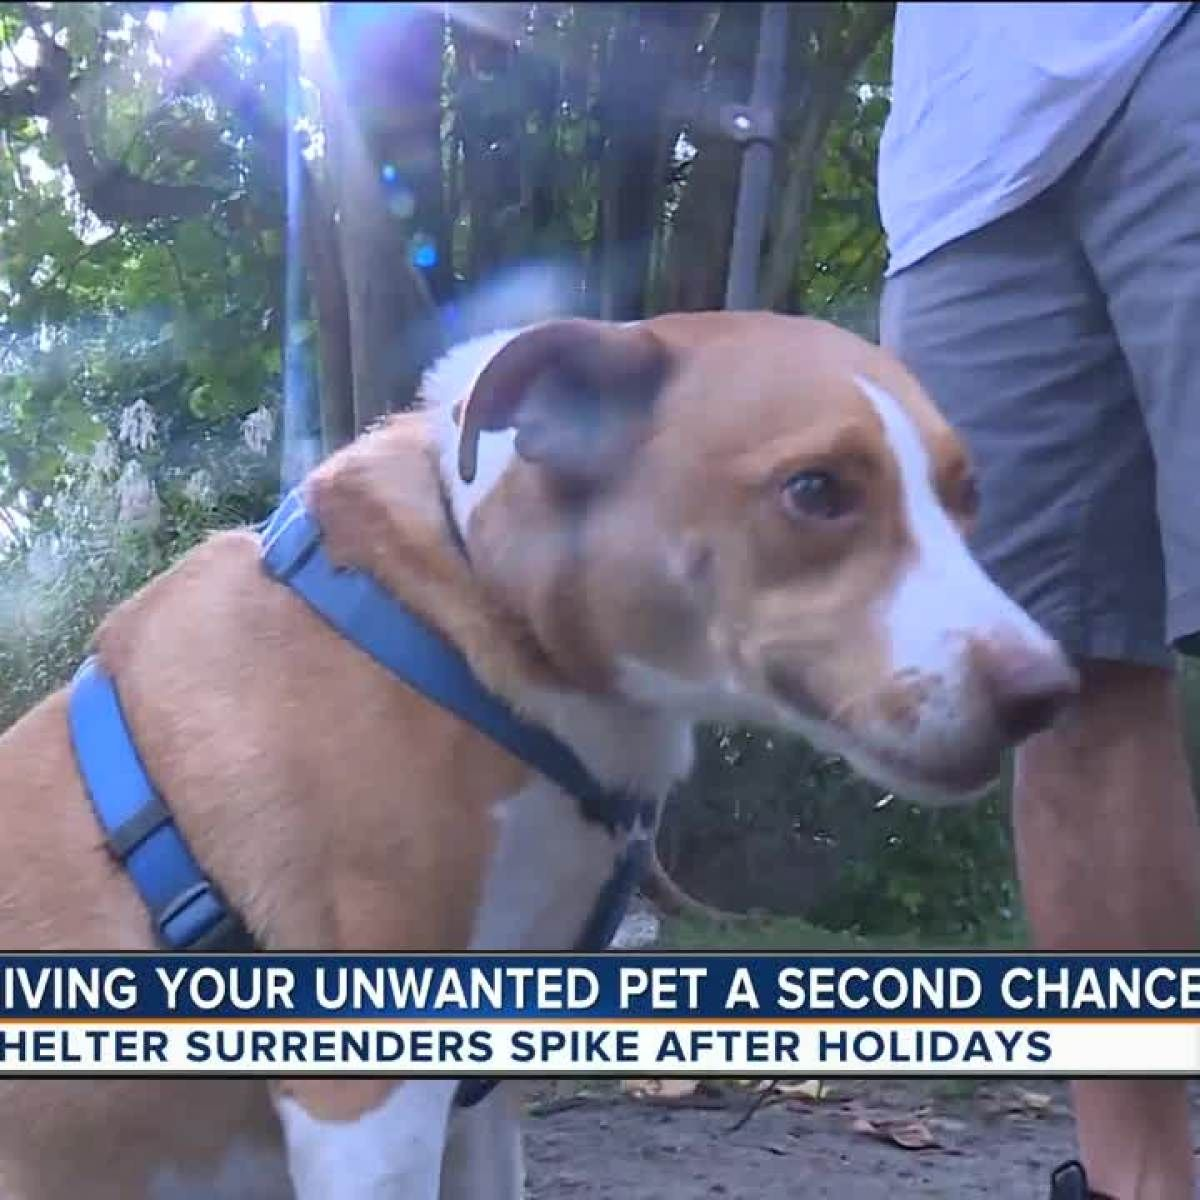 Prevent pet surrenders after the holidays Give new pets